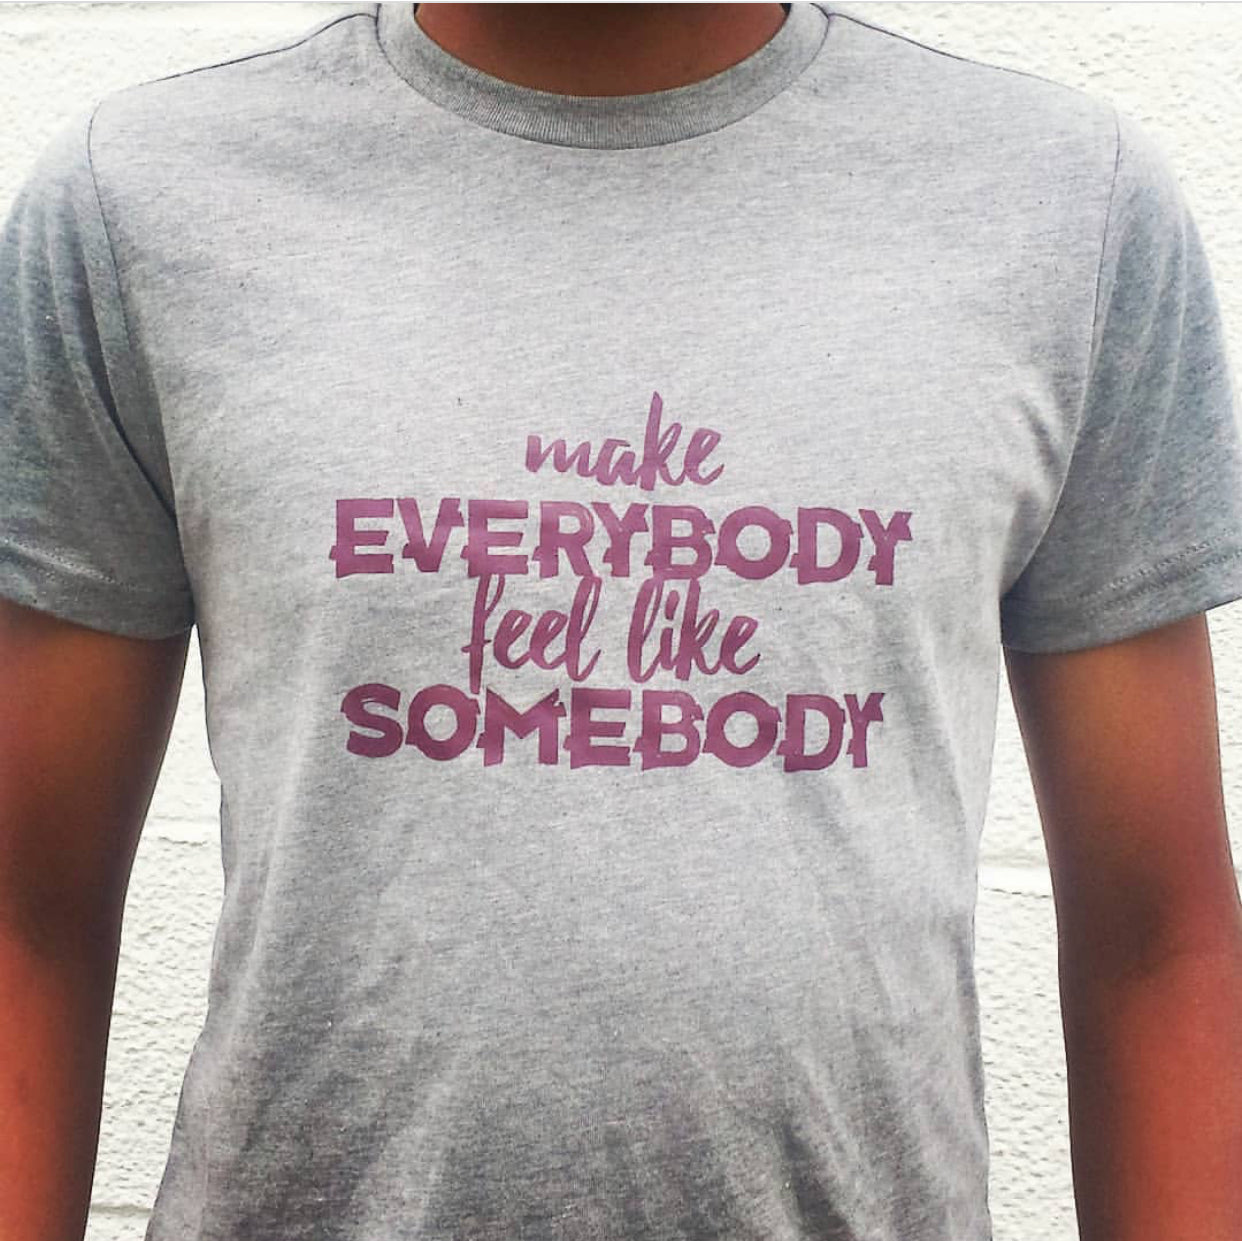 Make Everybody feel like Somebody Tee & Bodysuit